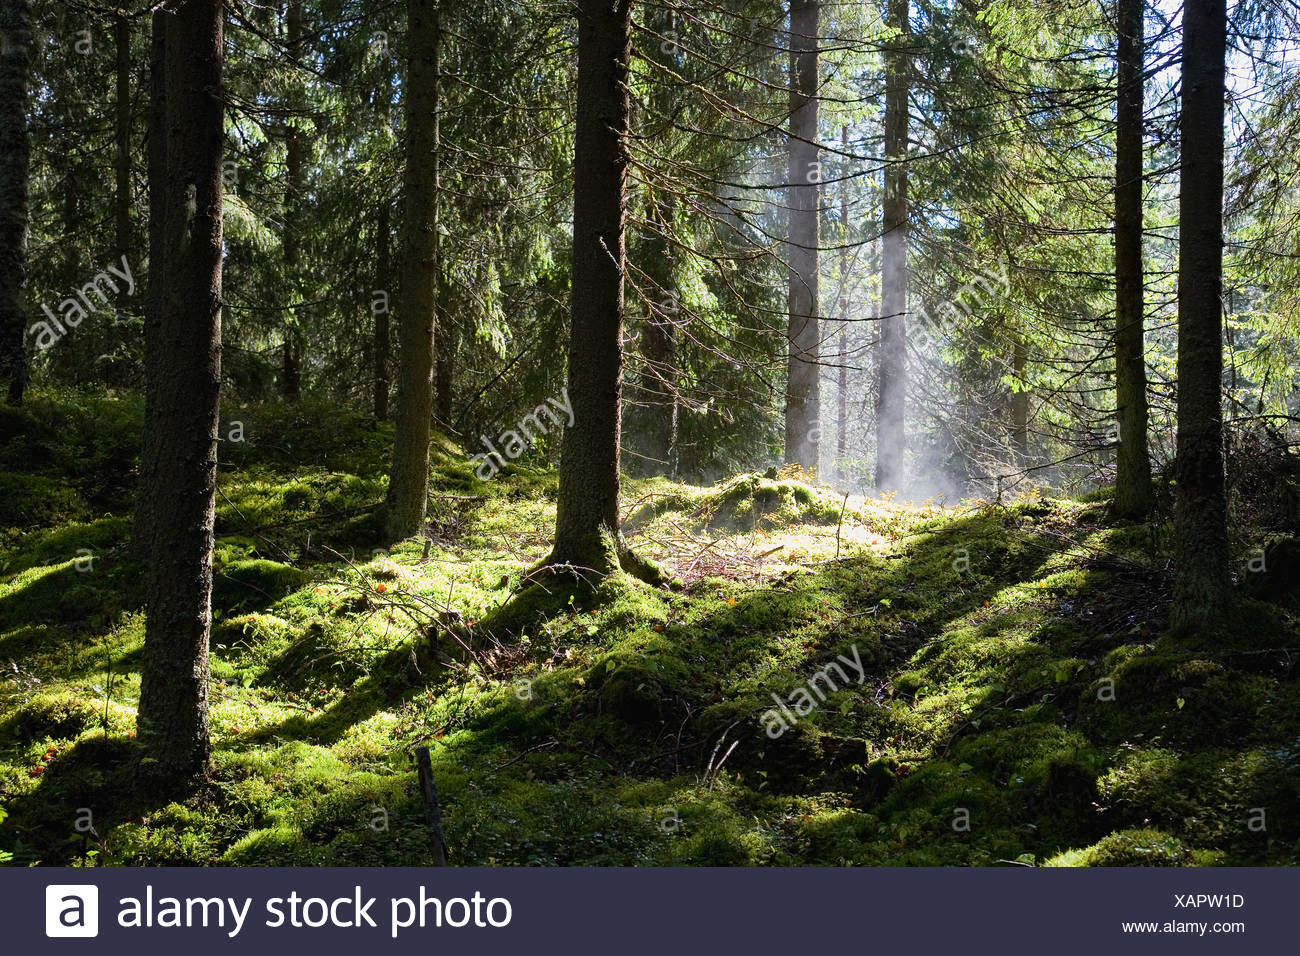 Lush green forest after rain-shower - Stock Image